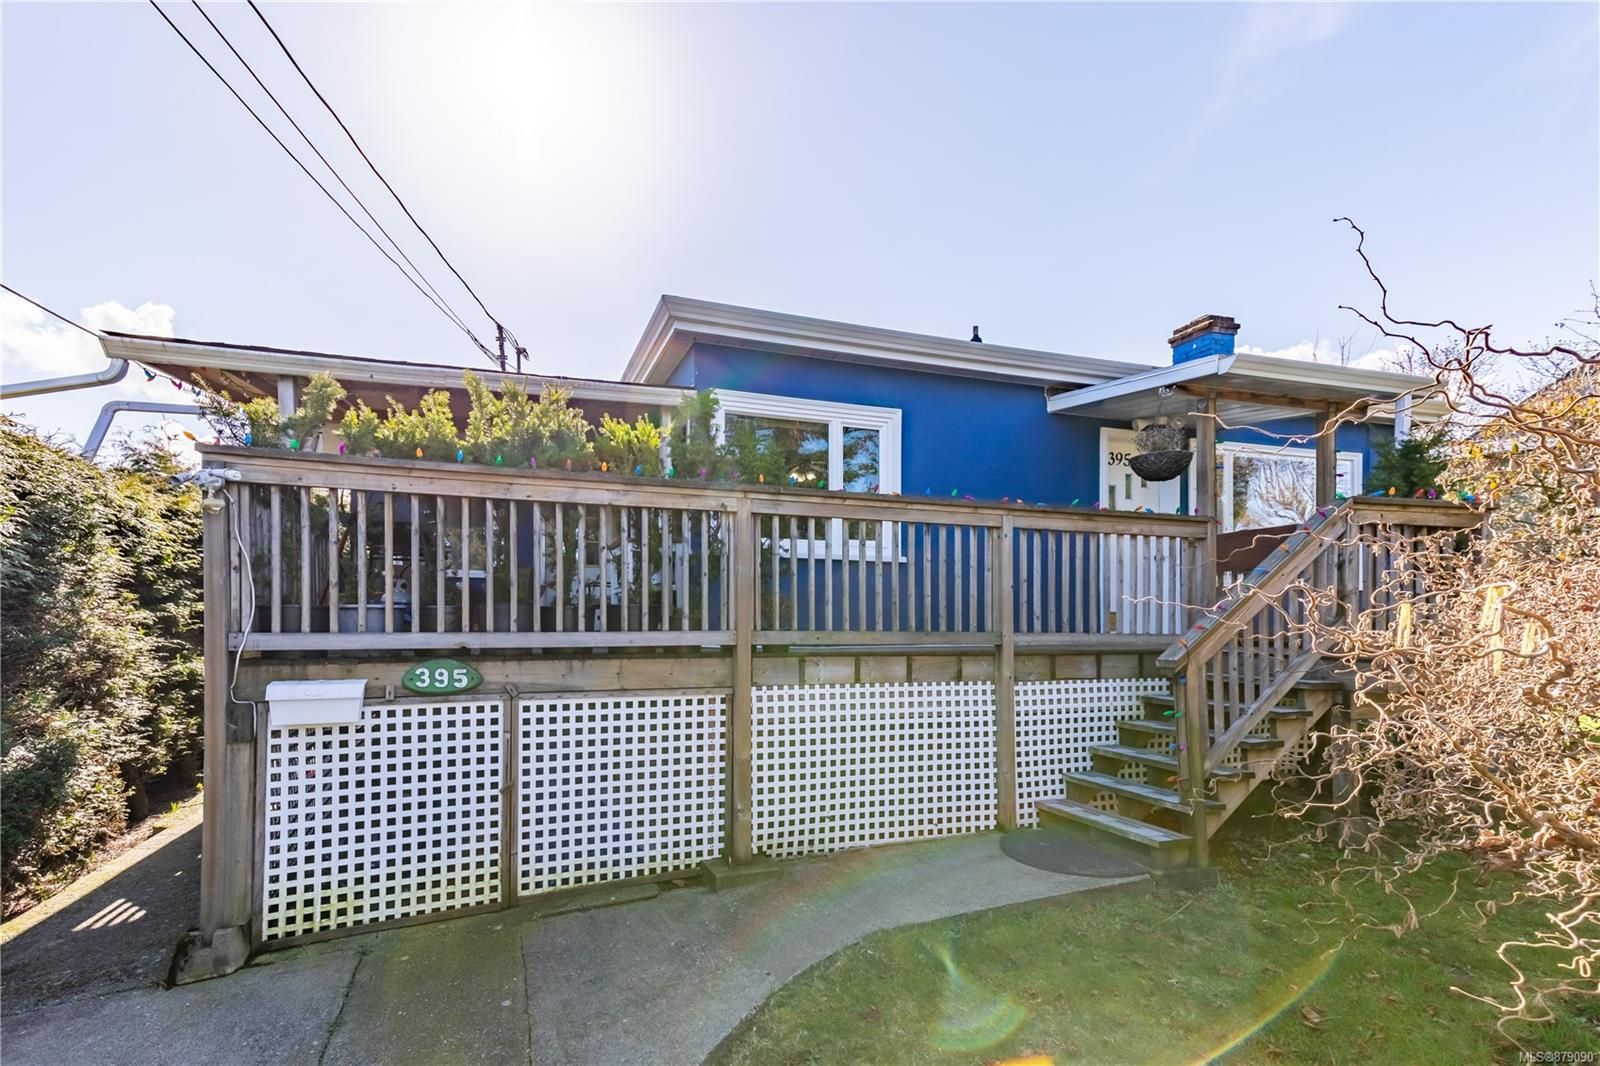 Main Photo: 395 Chestnut St in : Na Brechin Hill House for sale (Nanaimo)  : MLS®# 879090